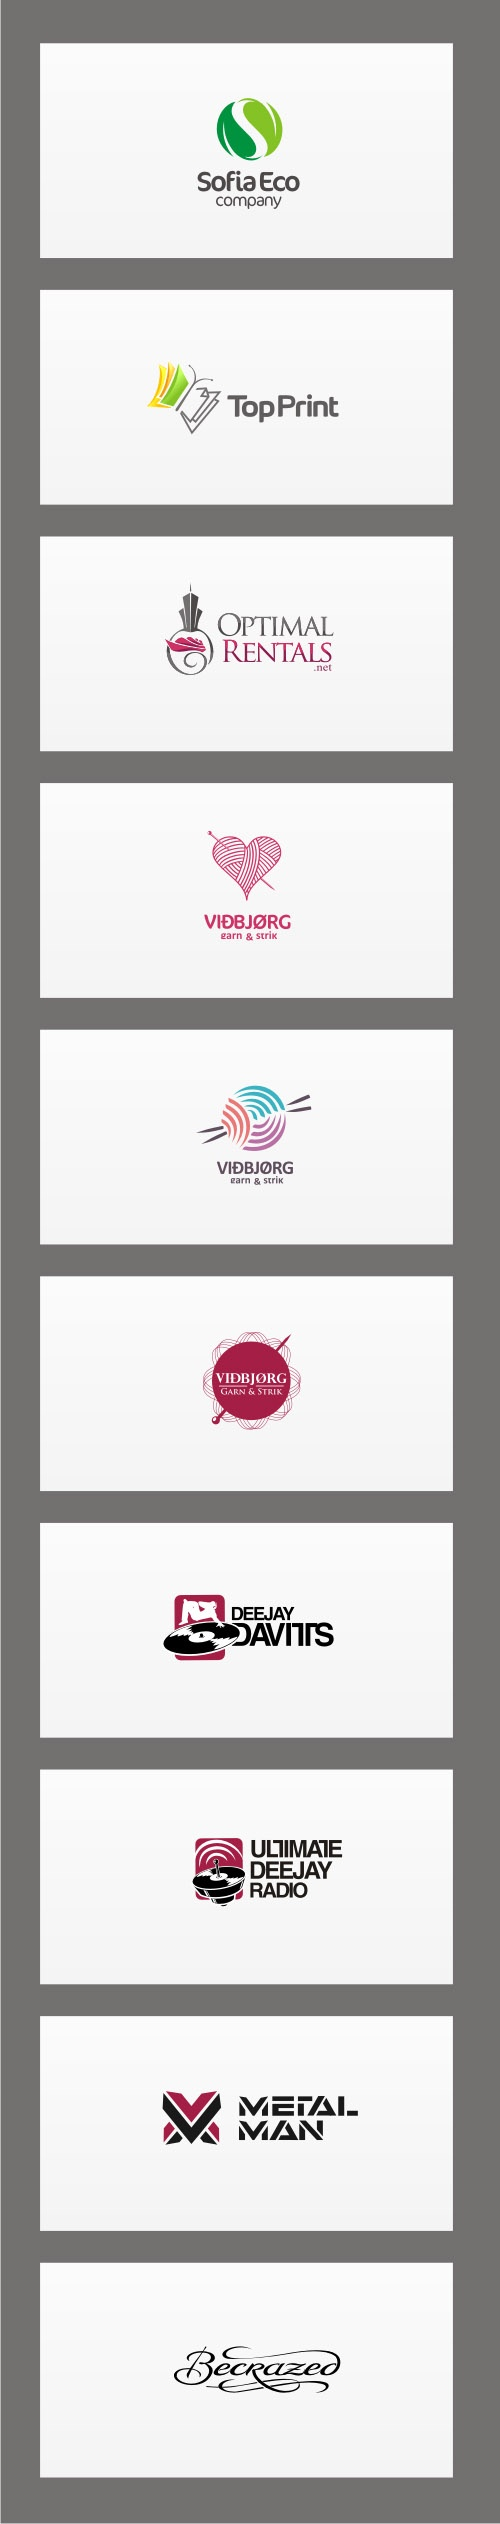 Logos v.2 by Ivan Manolov, via Behance